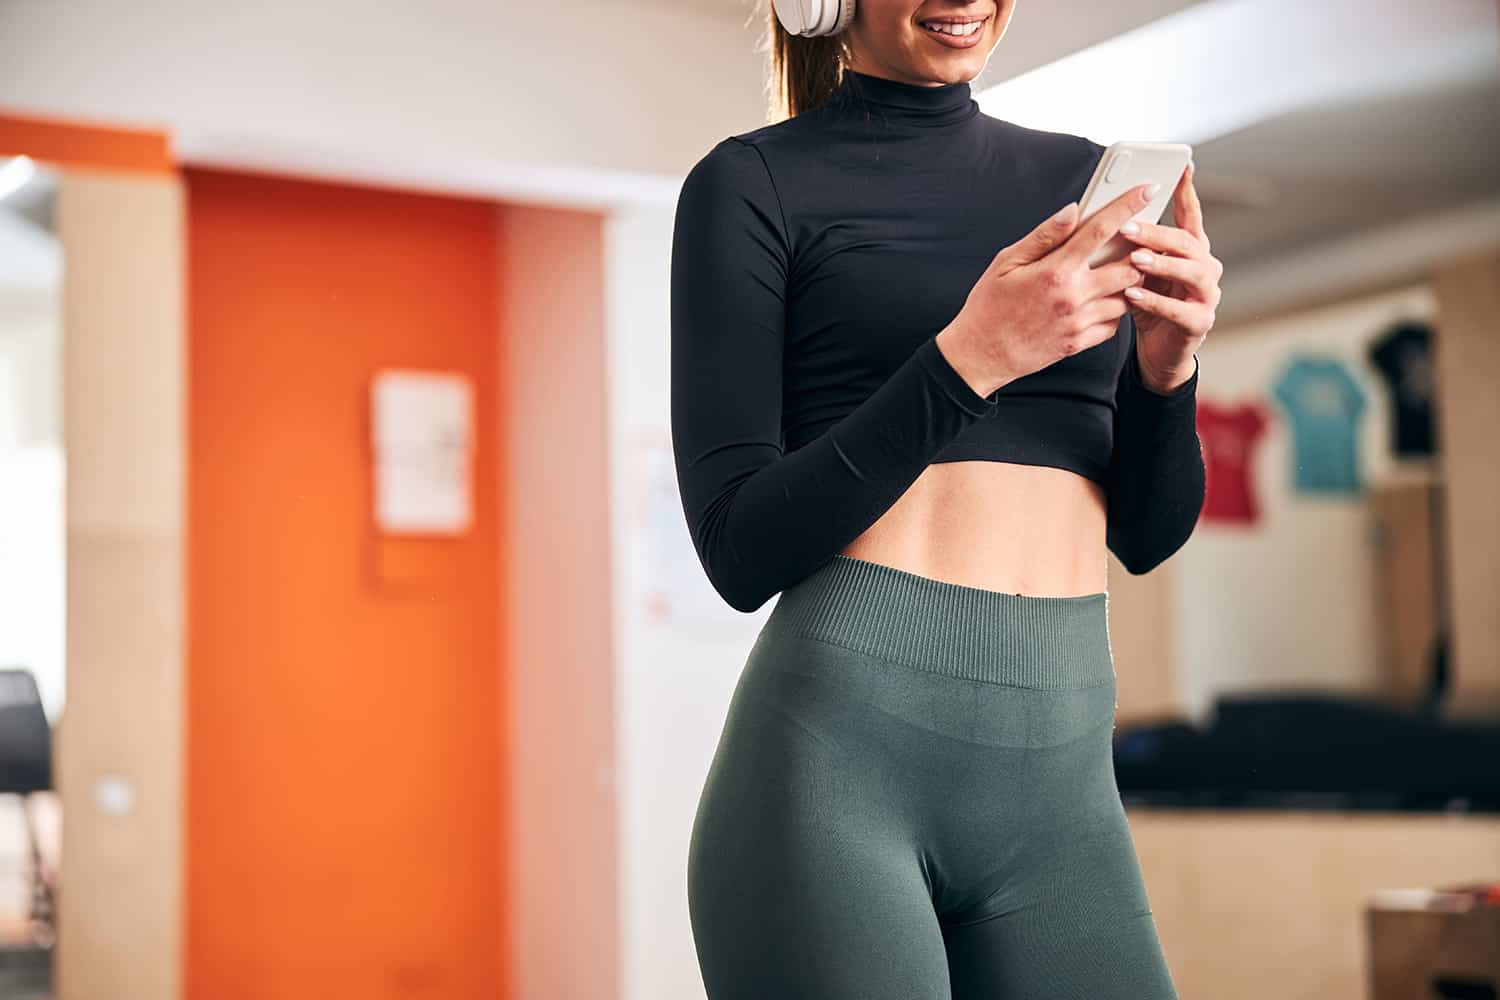 slender young woman checking phone at the gym z7t5bul